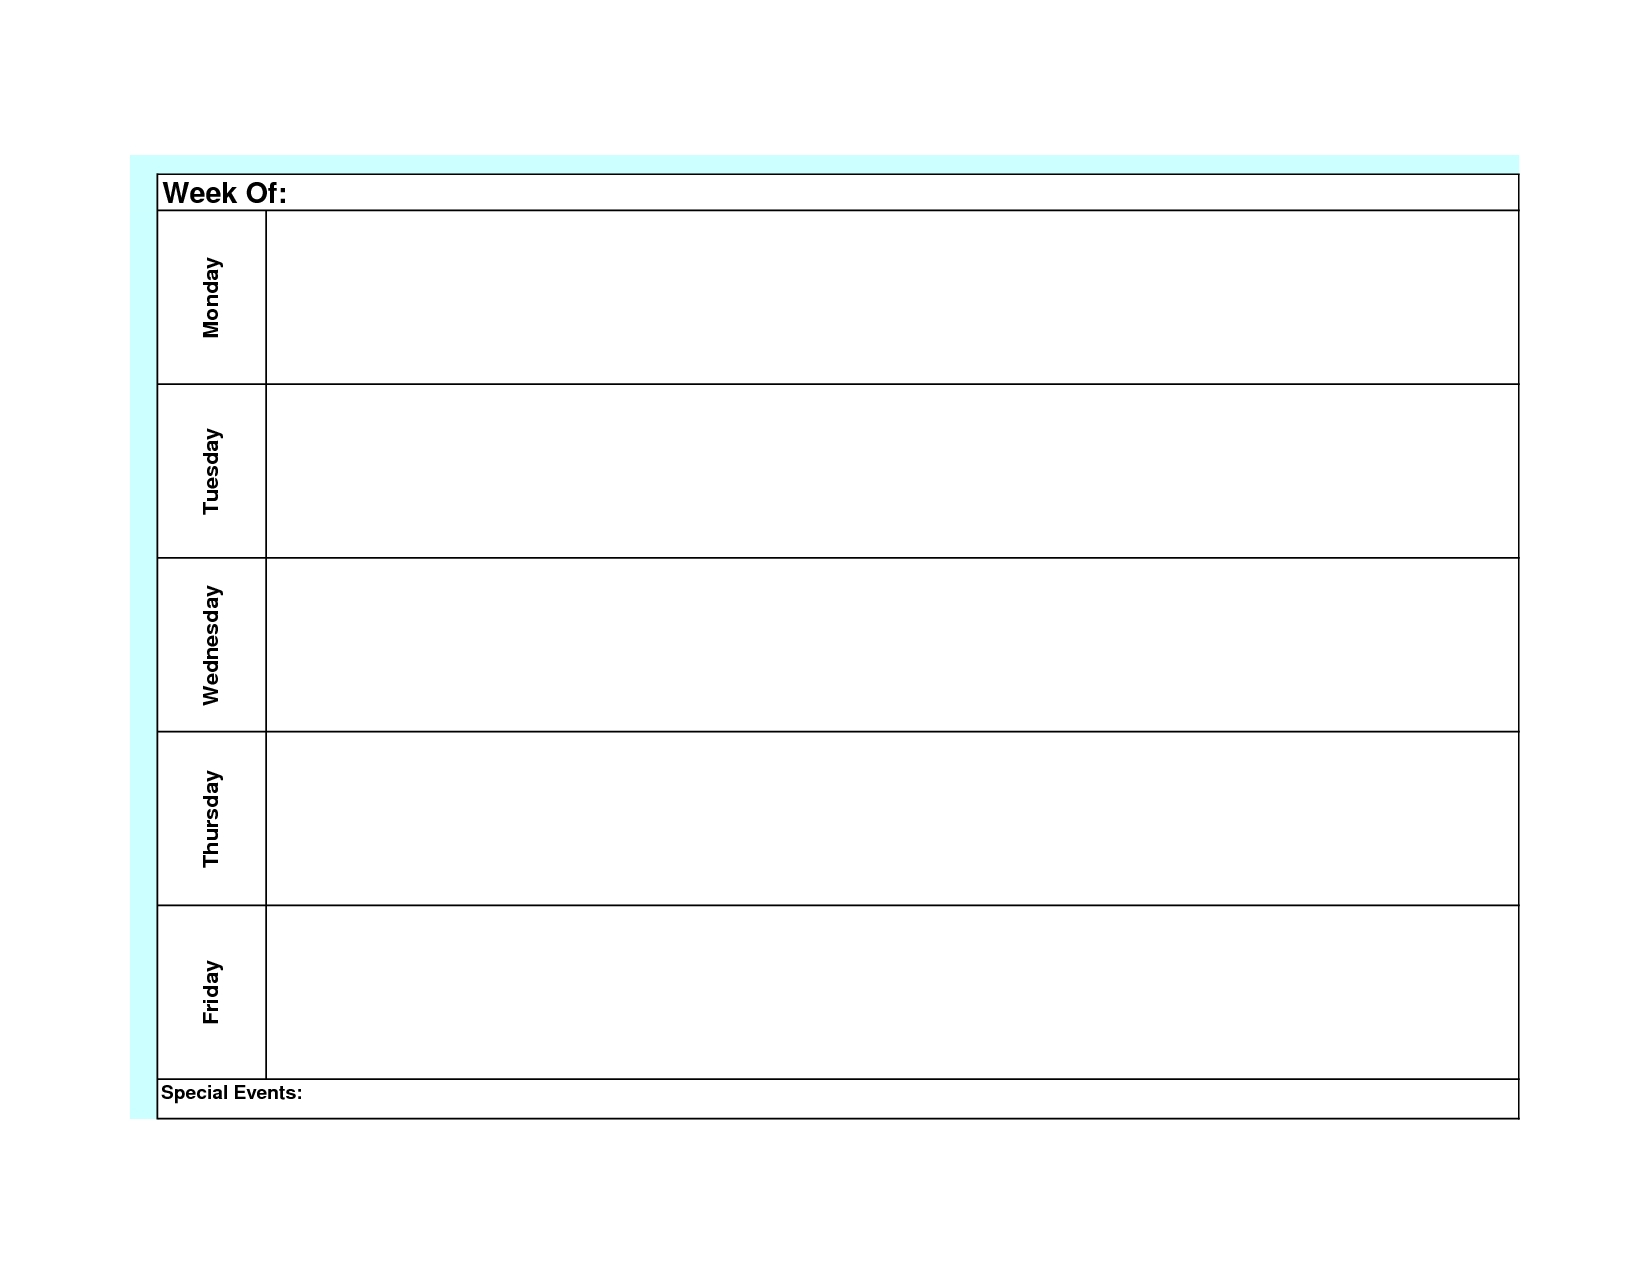 Monday To Friday Weekly Planner | Example Calendar Printable intended for Monday Through Friday Calendar Template